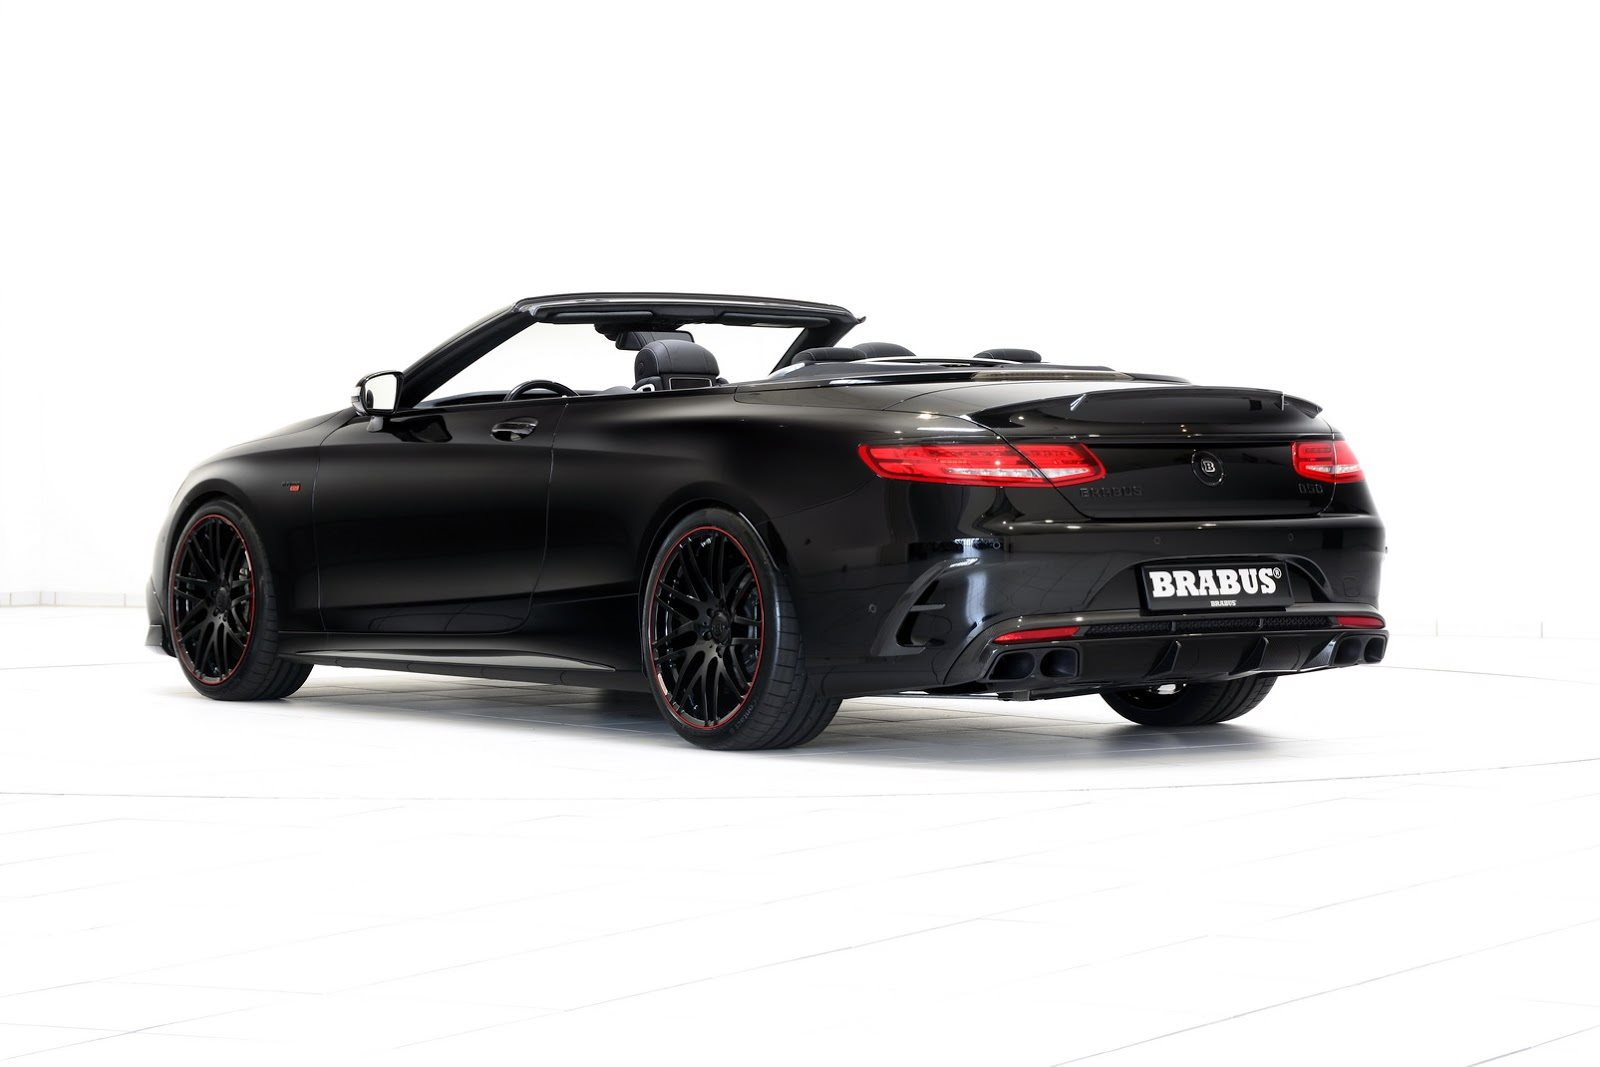 Brabus 850 6 0 biturbo mercedes amg s63 based convertible for Mercedes benz s63 amg biturbo